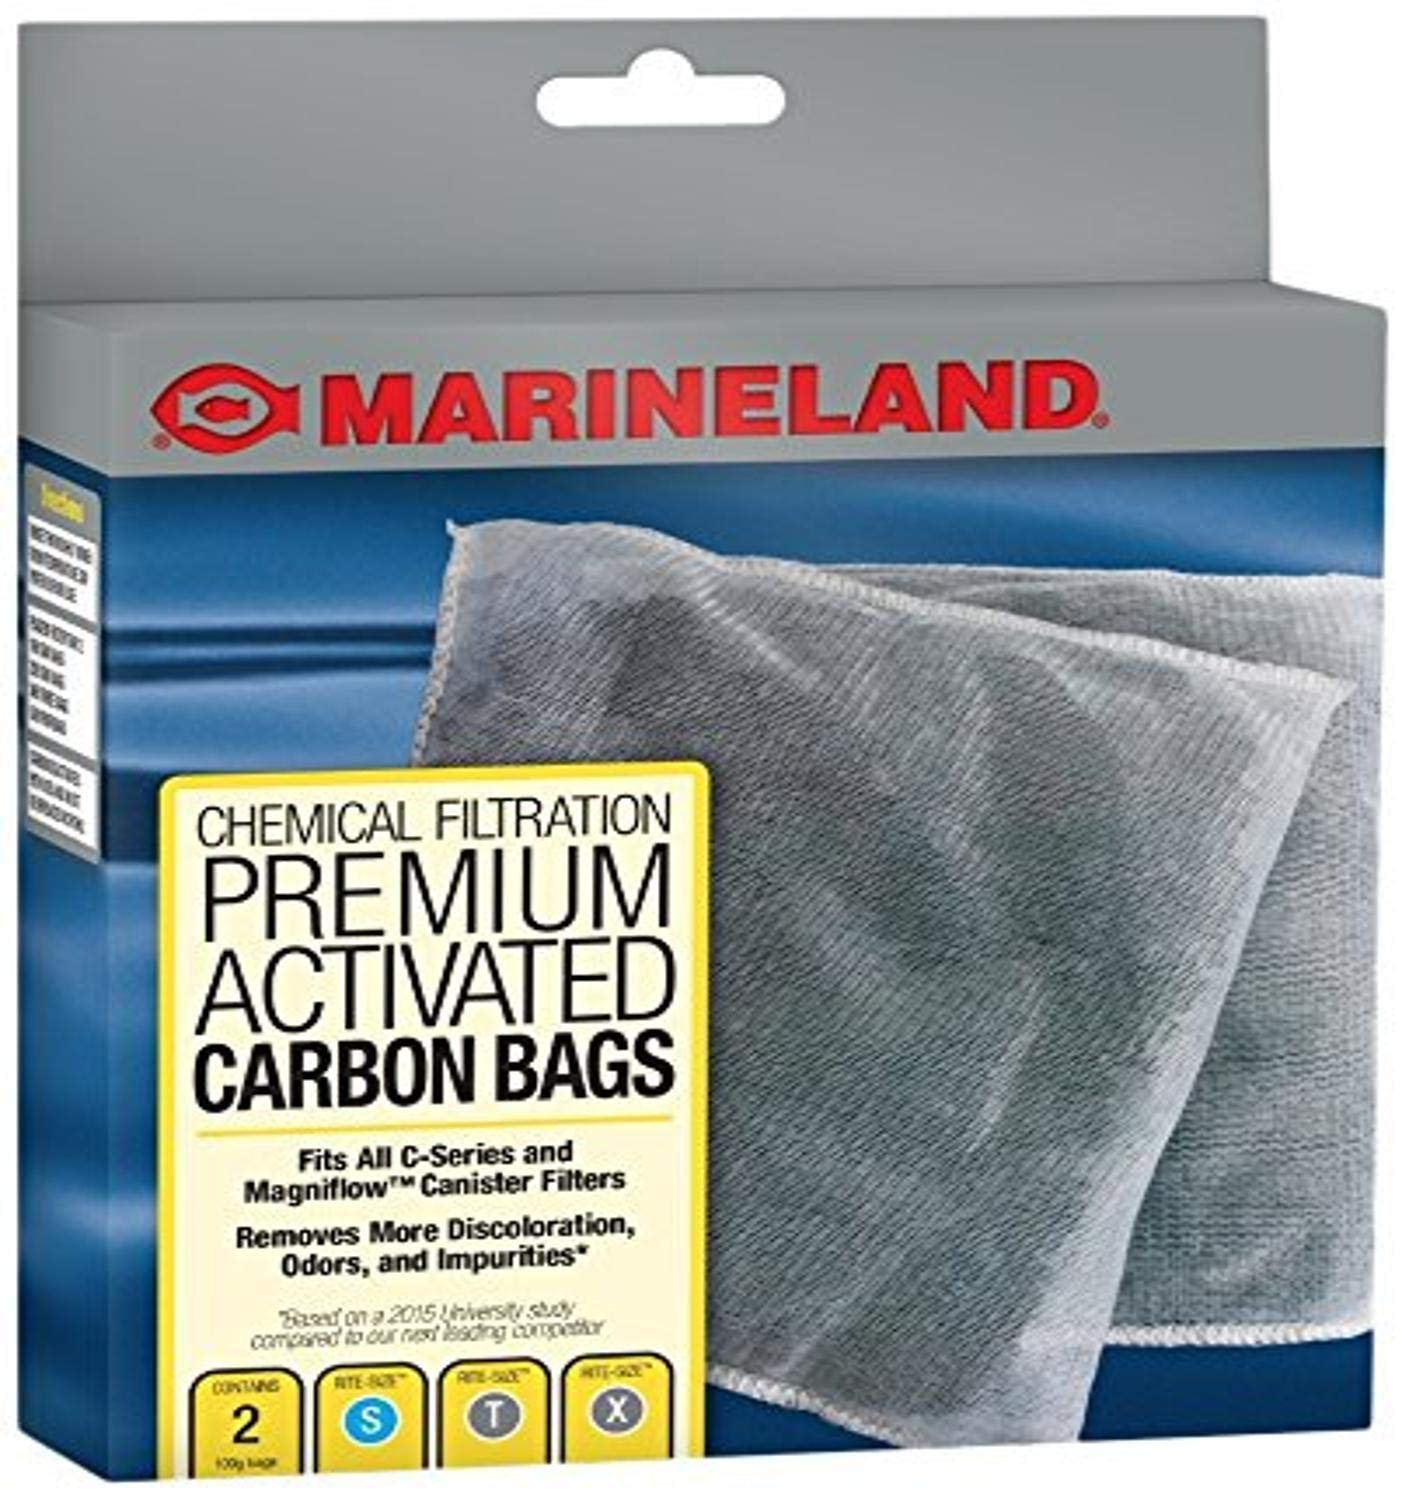 MarineLand Premium Activated Carbon Bags, for Chemical Filtration in Aquariums